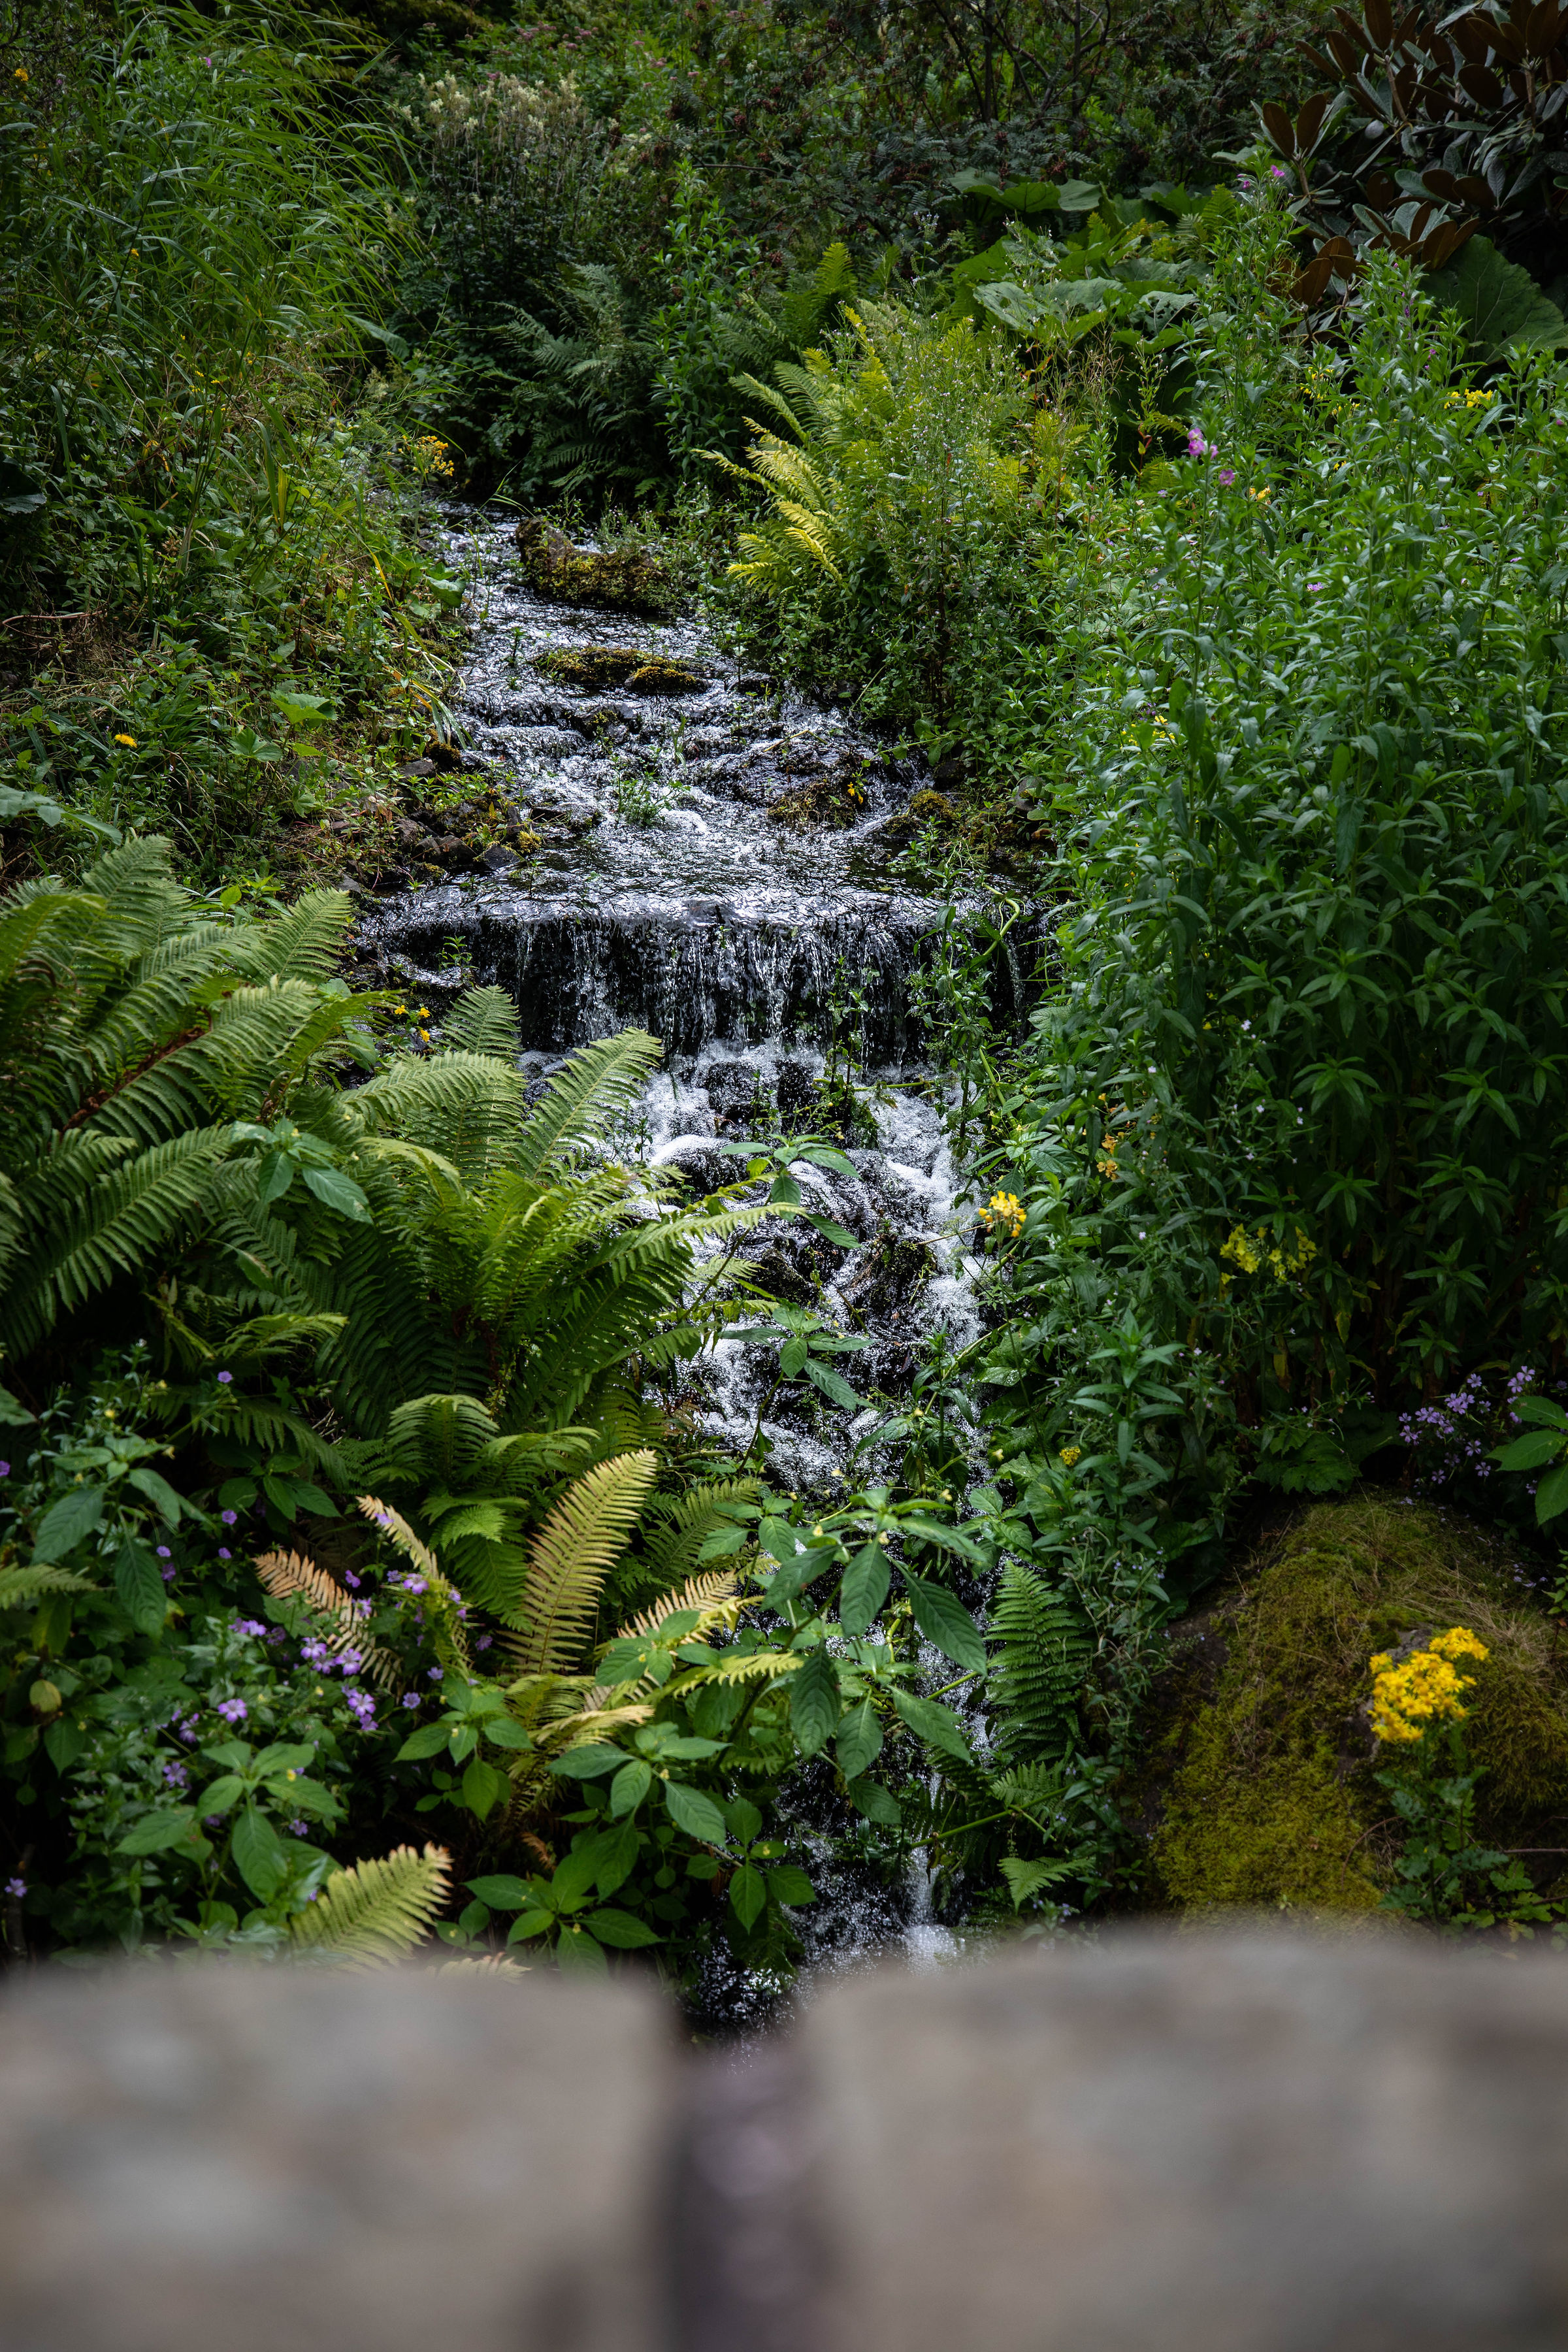 Waterfall at Royal Botanic Gardens Edinburgh in Edinburgh, Scotland United Kingdom